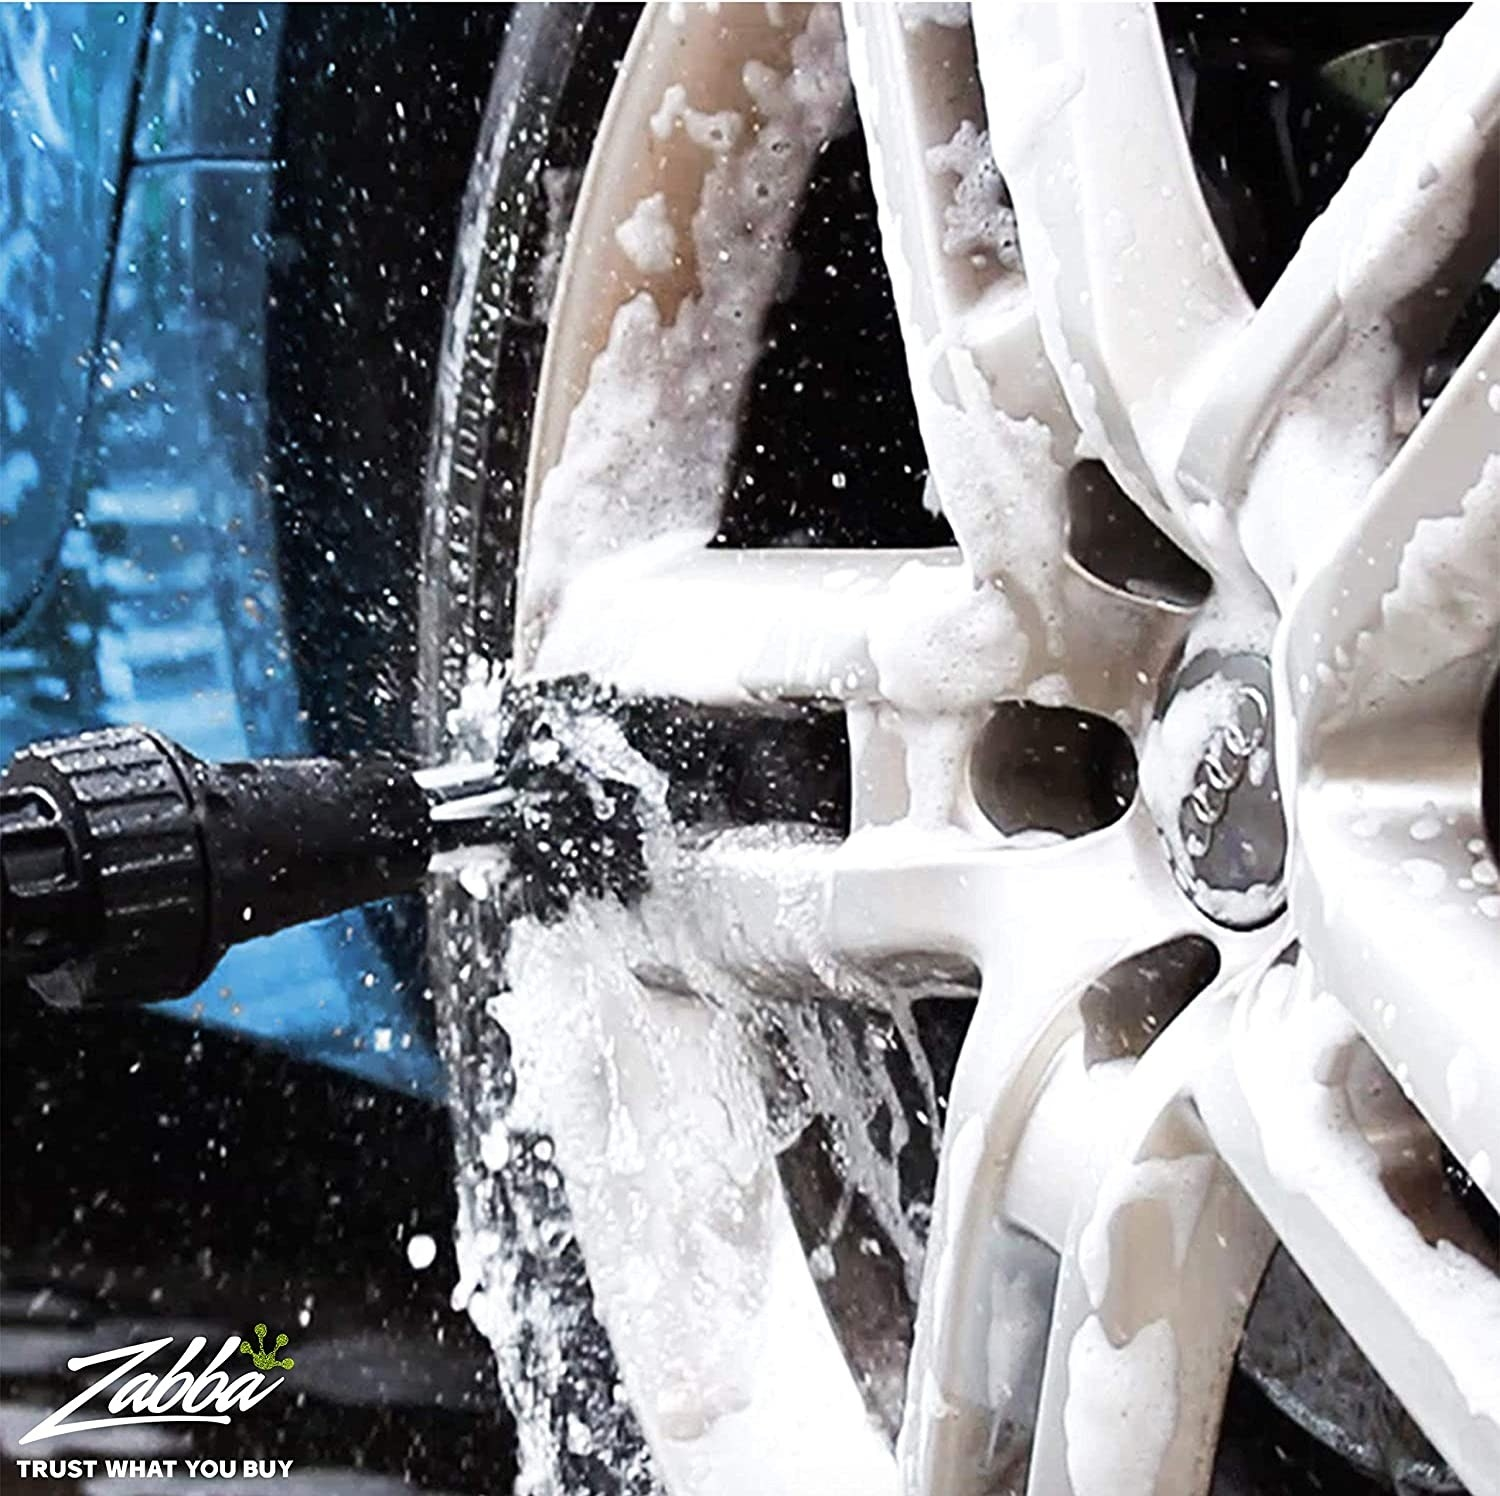 the brush cleaning a car tire